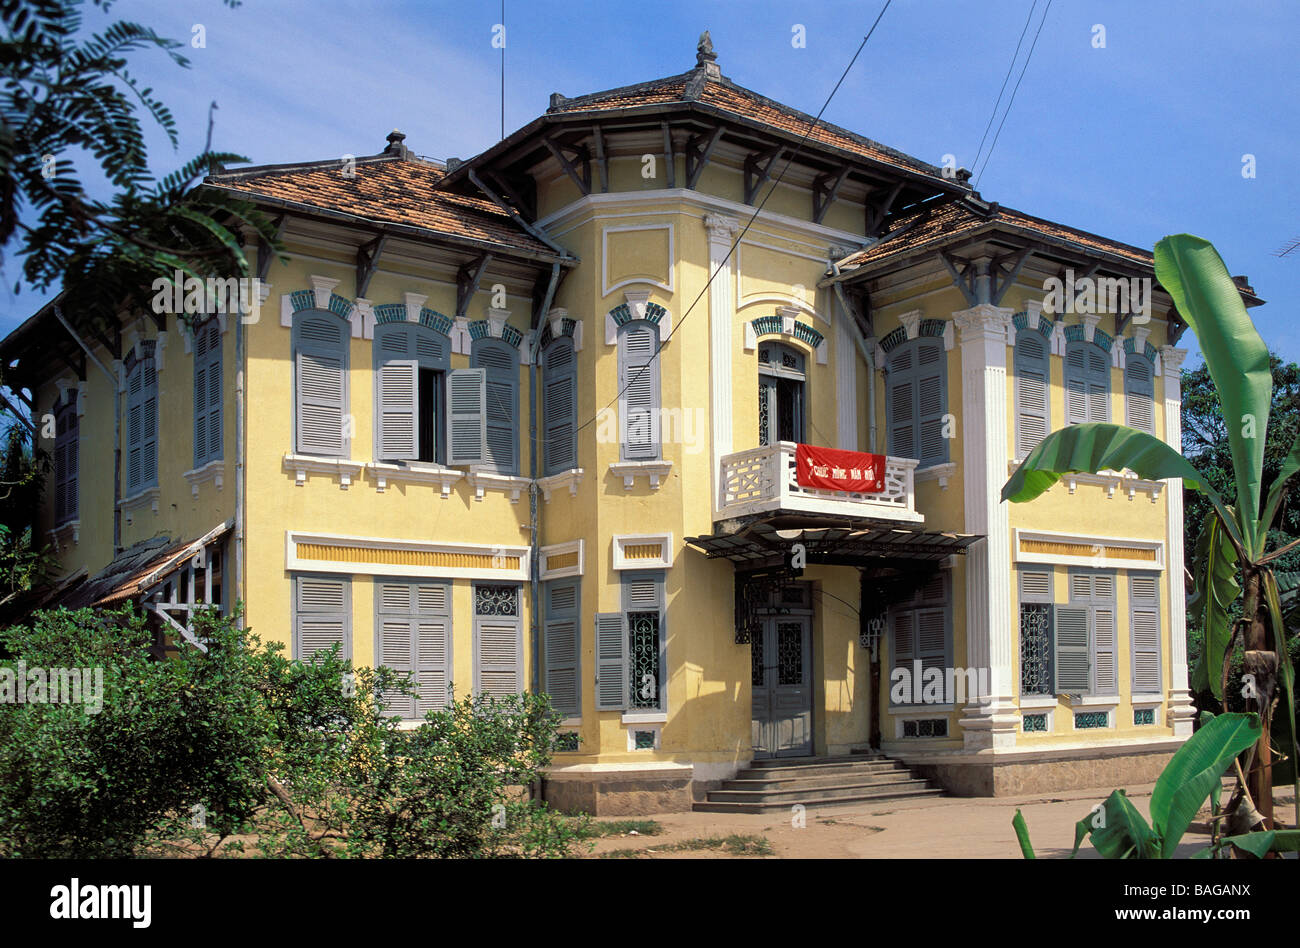 Vietnam, Dong Thap Province, Mekong Delta, Sa Dec, the French writer Marguerite Duras's house - Stock Image